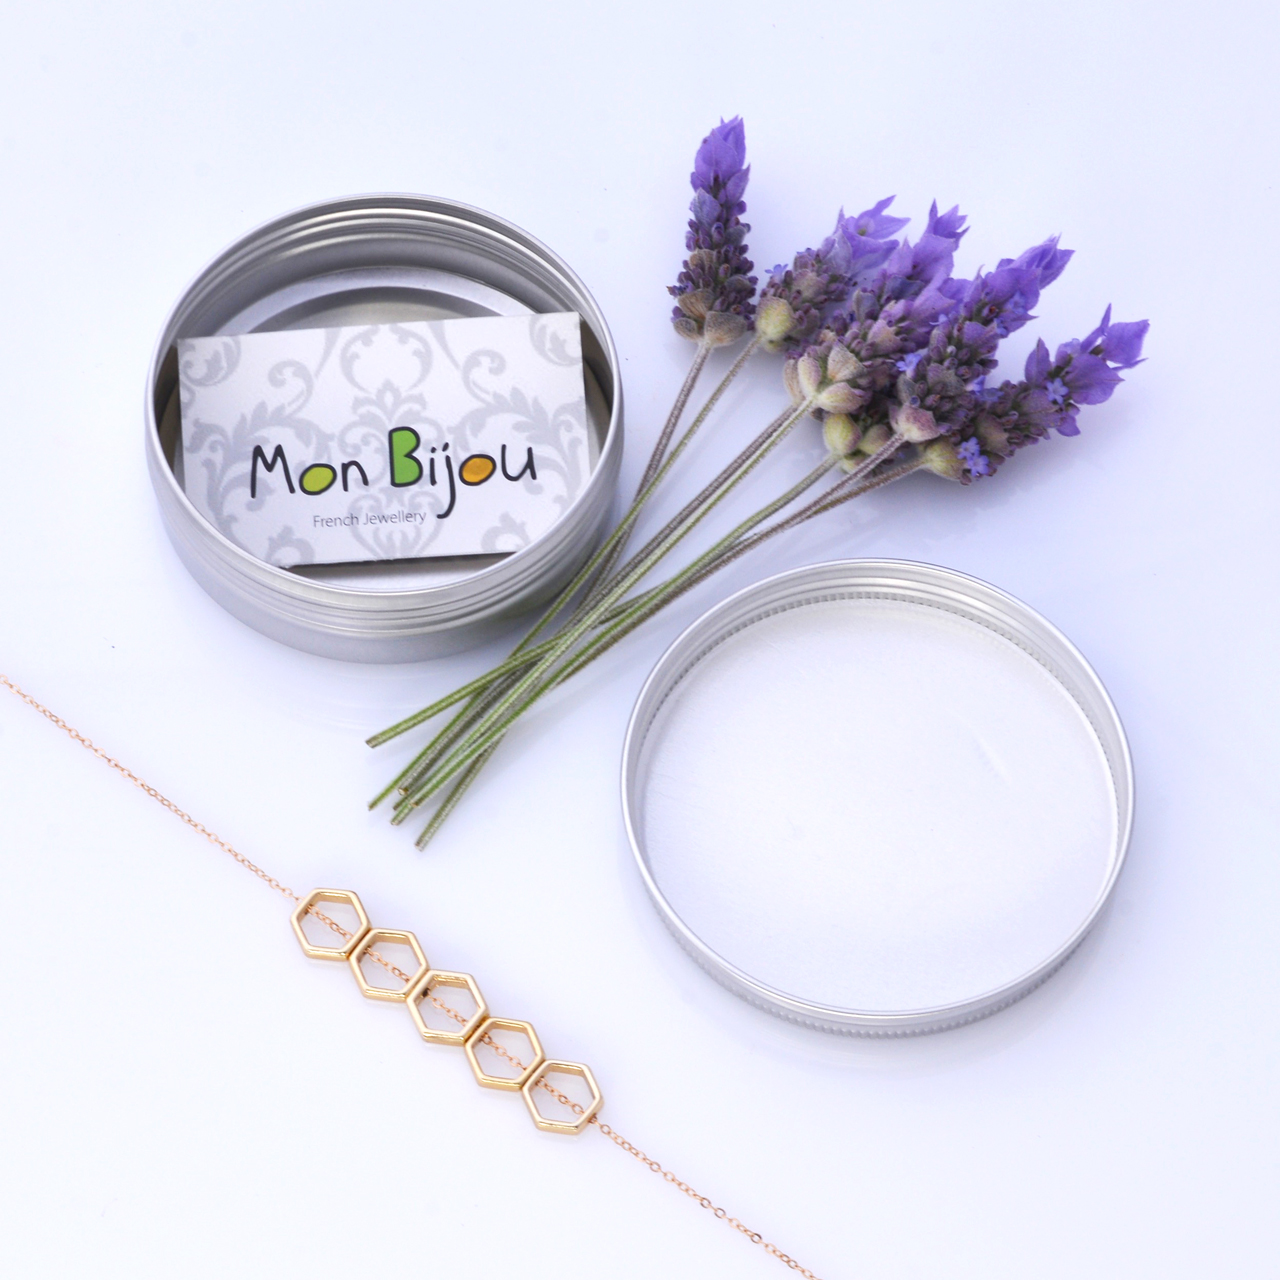 Mon Bijou Golden Hexagon 5 Necklace with silver gift tin | The Design Gift Shop